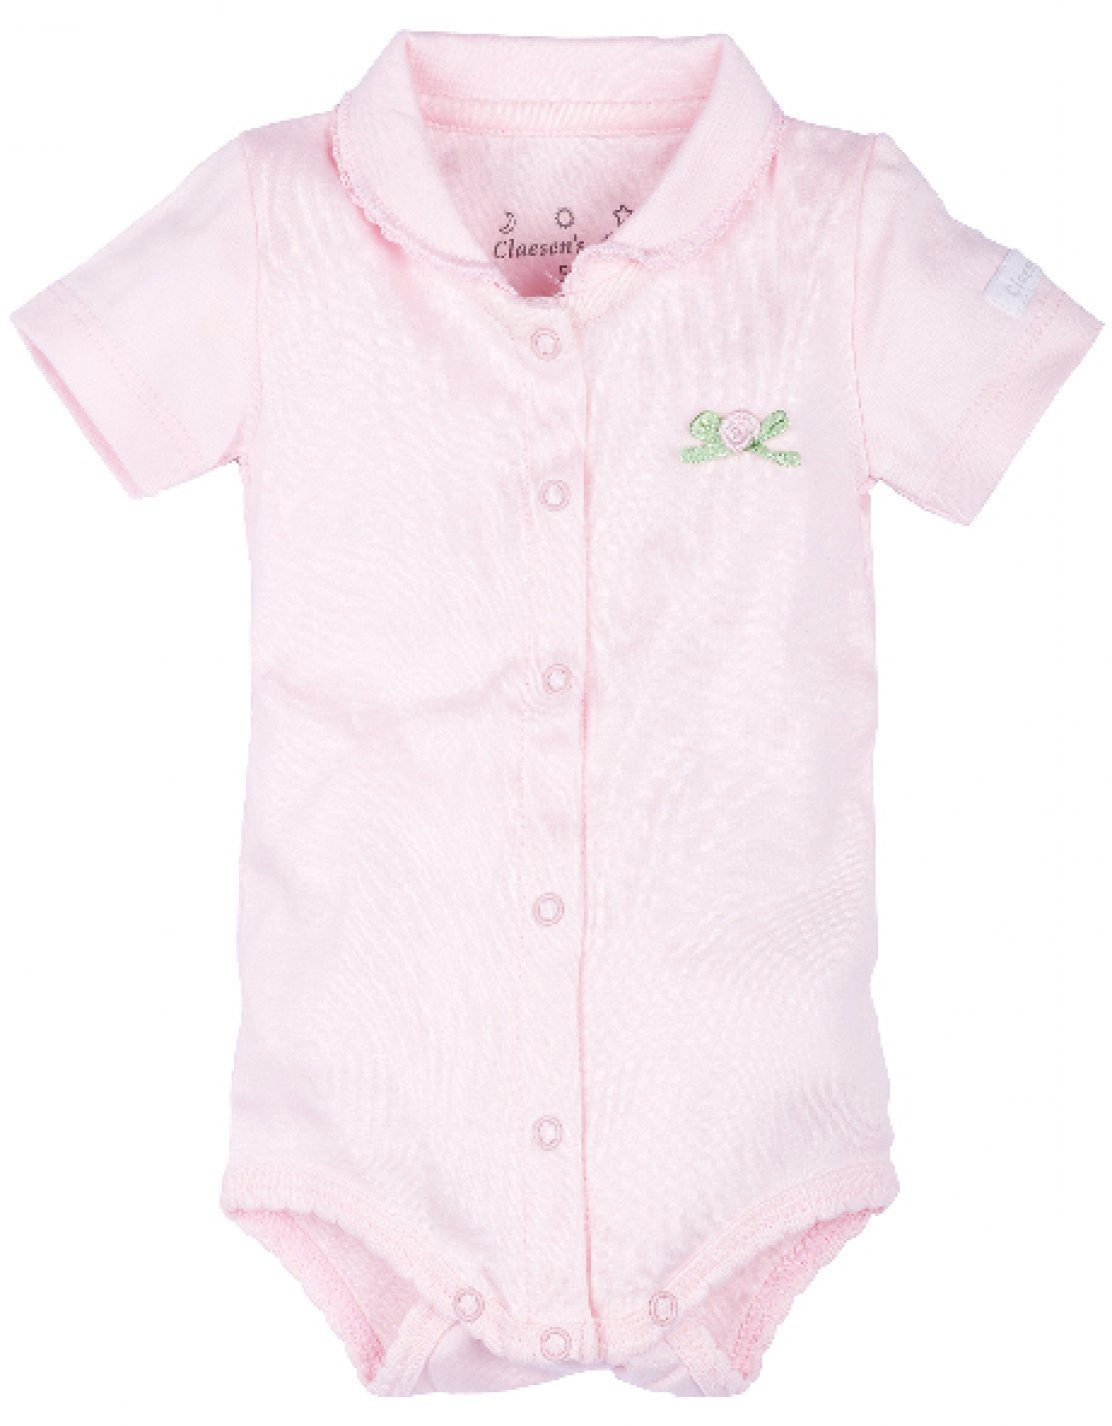 Baby Onesie SS with Collar